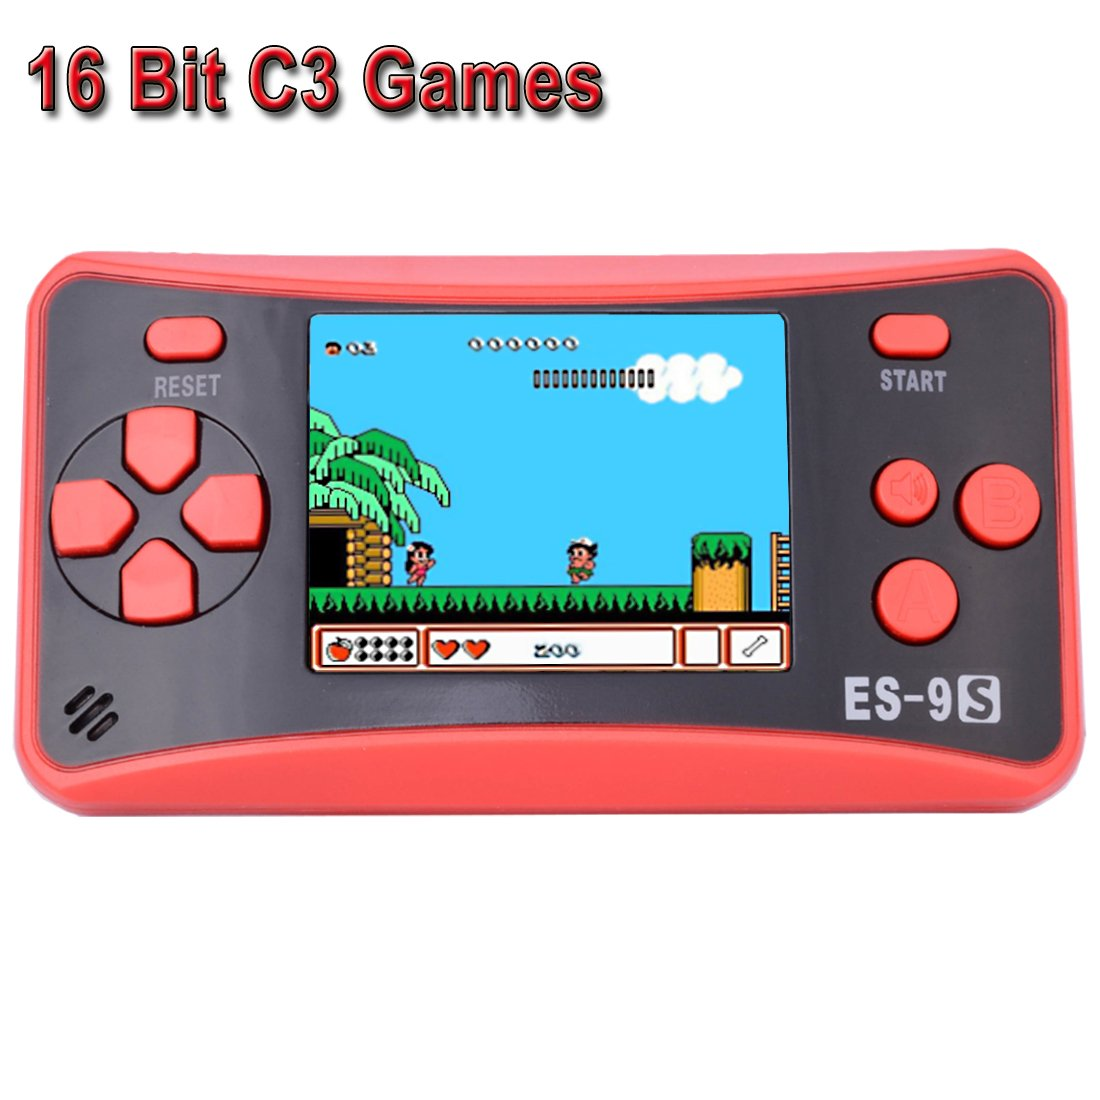 Retro Handheld Game Console for Kids Portable Game Player Mini Arcade Gaming System with Build in 16 Bit 168 Classic Video Old Style Games 2.5'' Color LCD Screen (Red+Black)